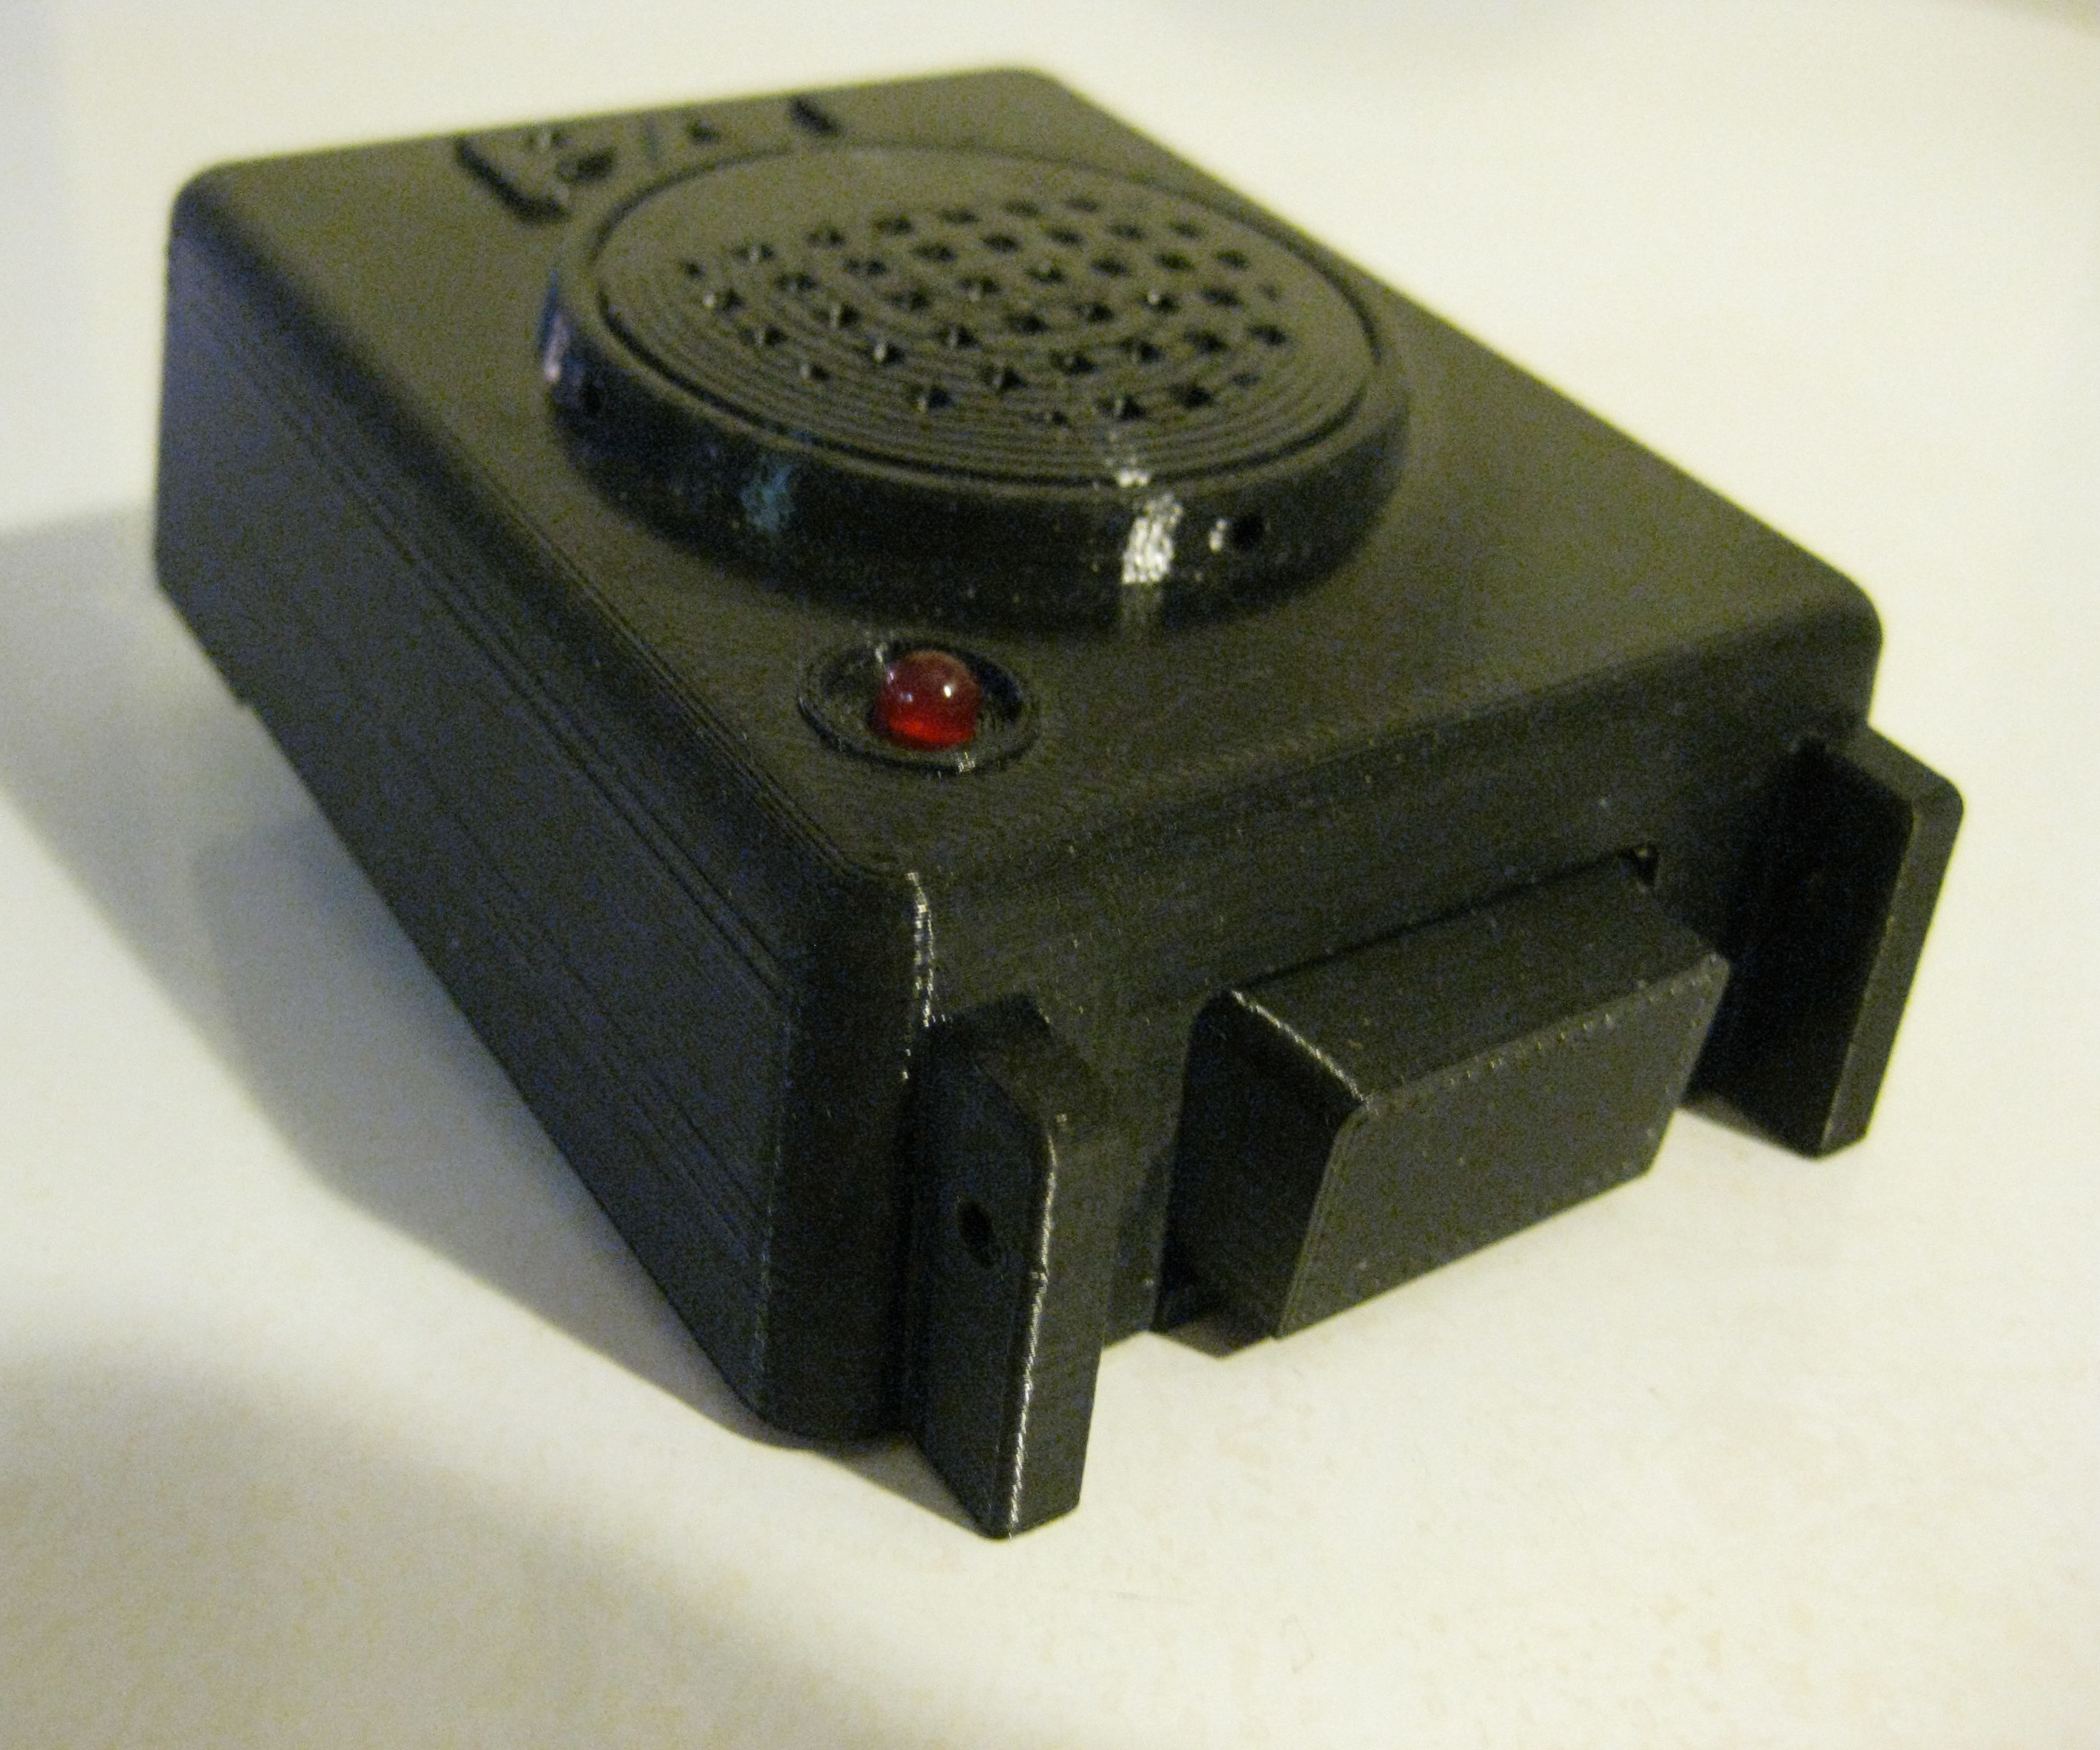 PAL Comm Unit from Firefly (LED light up)